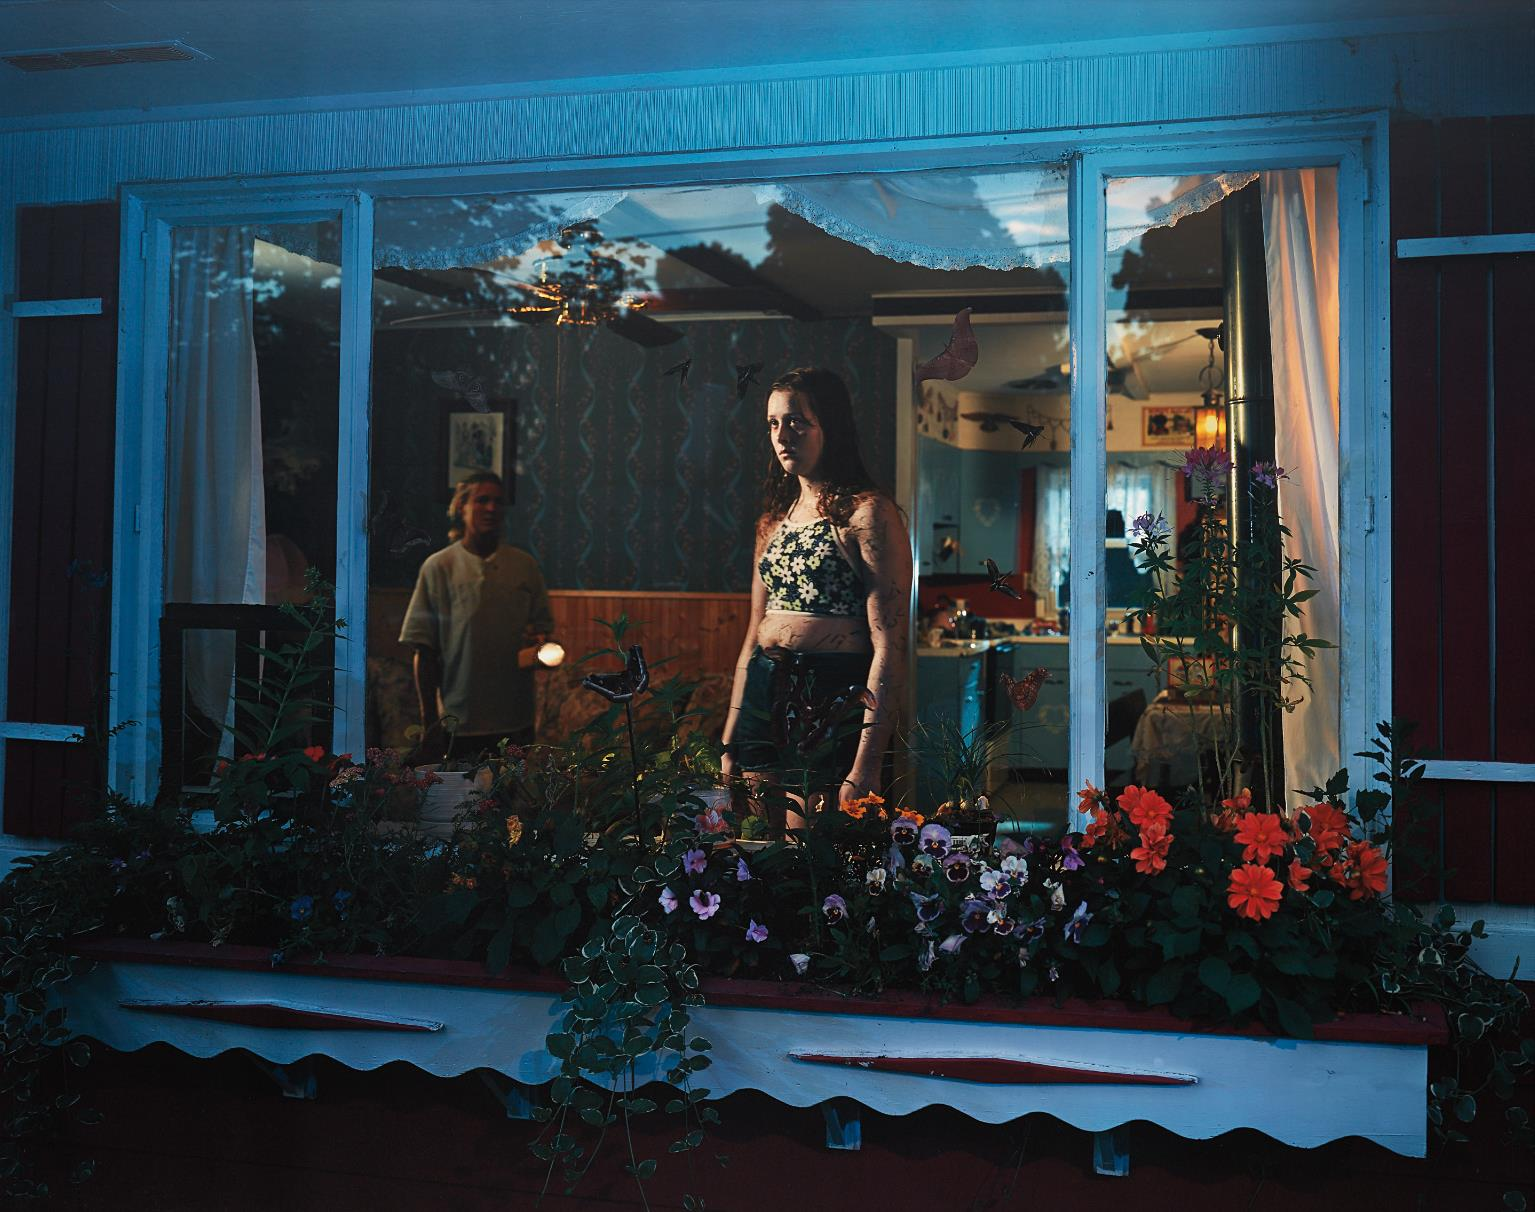 Gregory Crewdson-Untitled (Girl In Window) From Twilight-1999